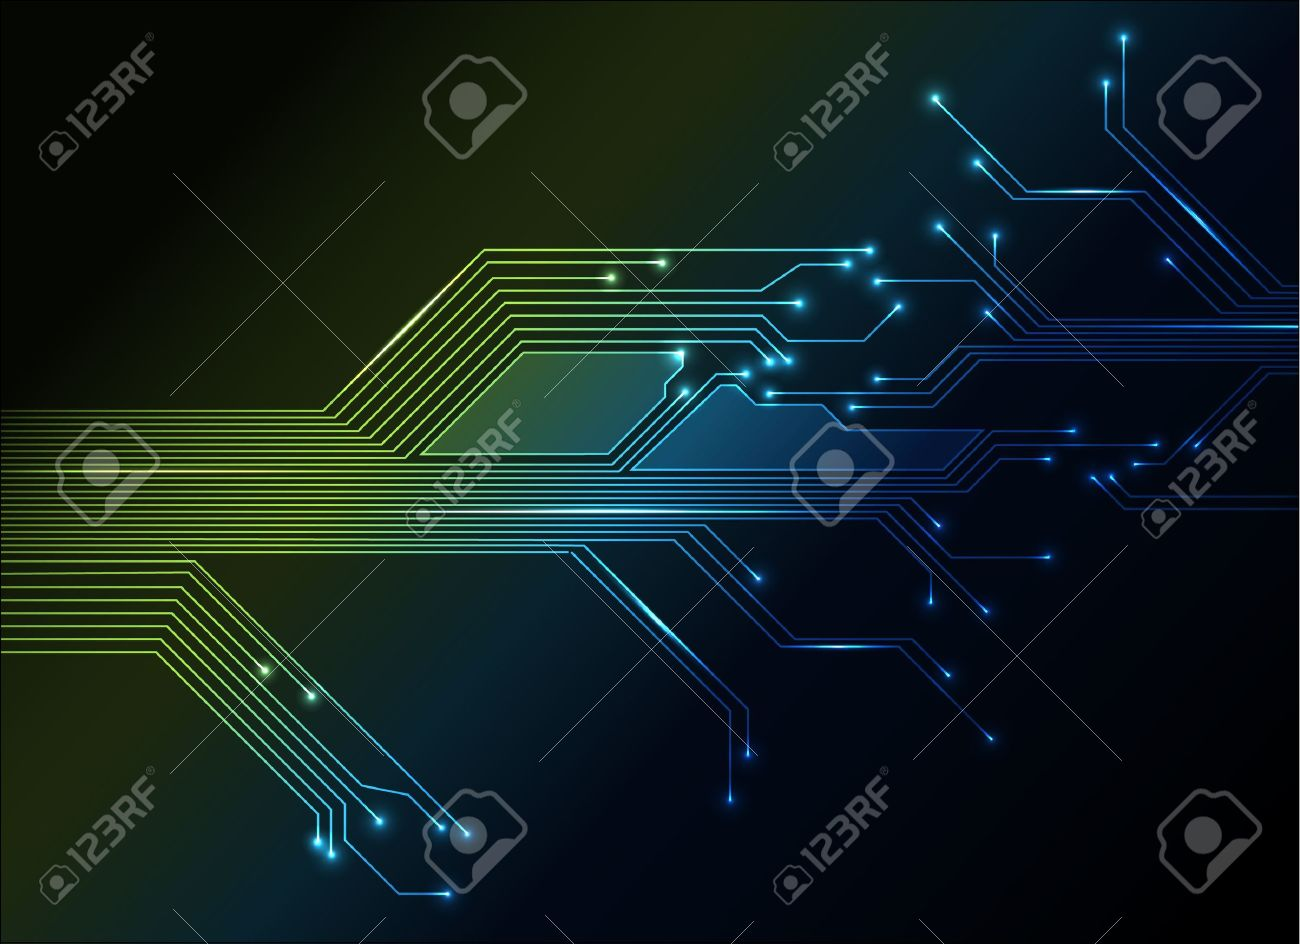 electronic circuit abstract green and blue background Stock Vector - 9466309